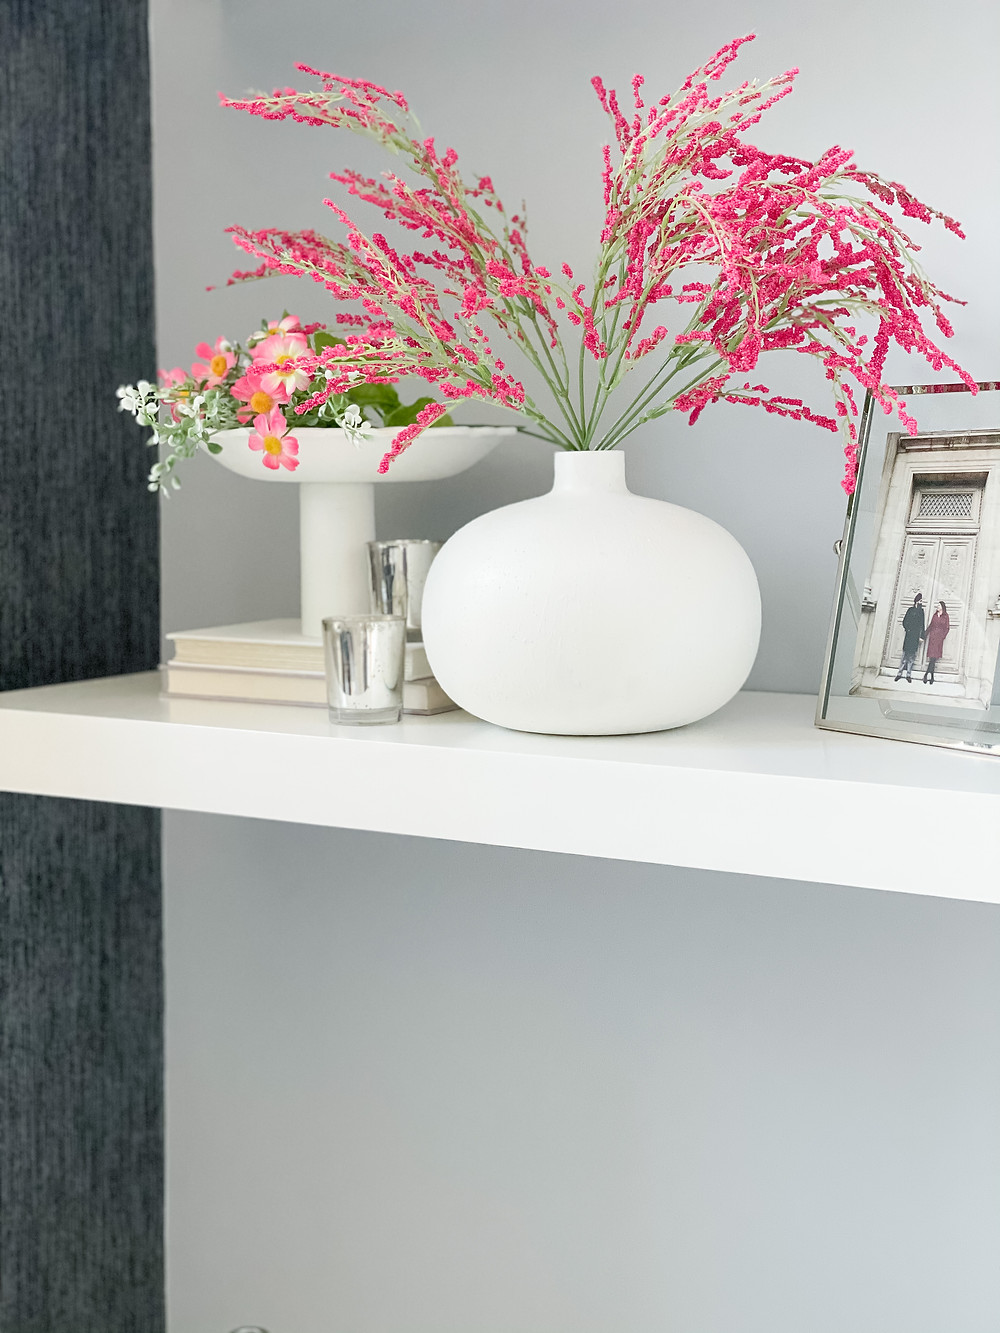 Modern Minimalist Shelf Styling For The Spring Months #shelfstyling #springdecor